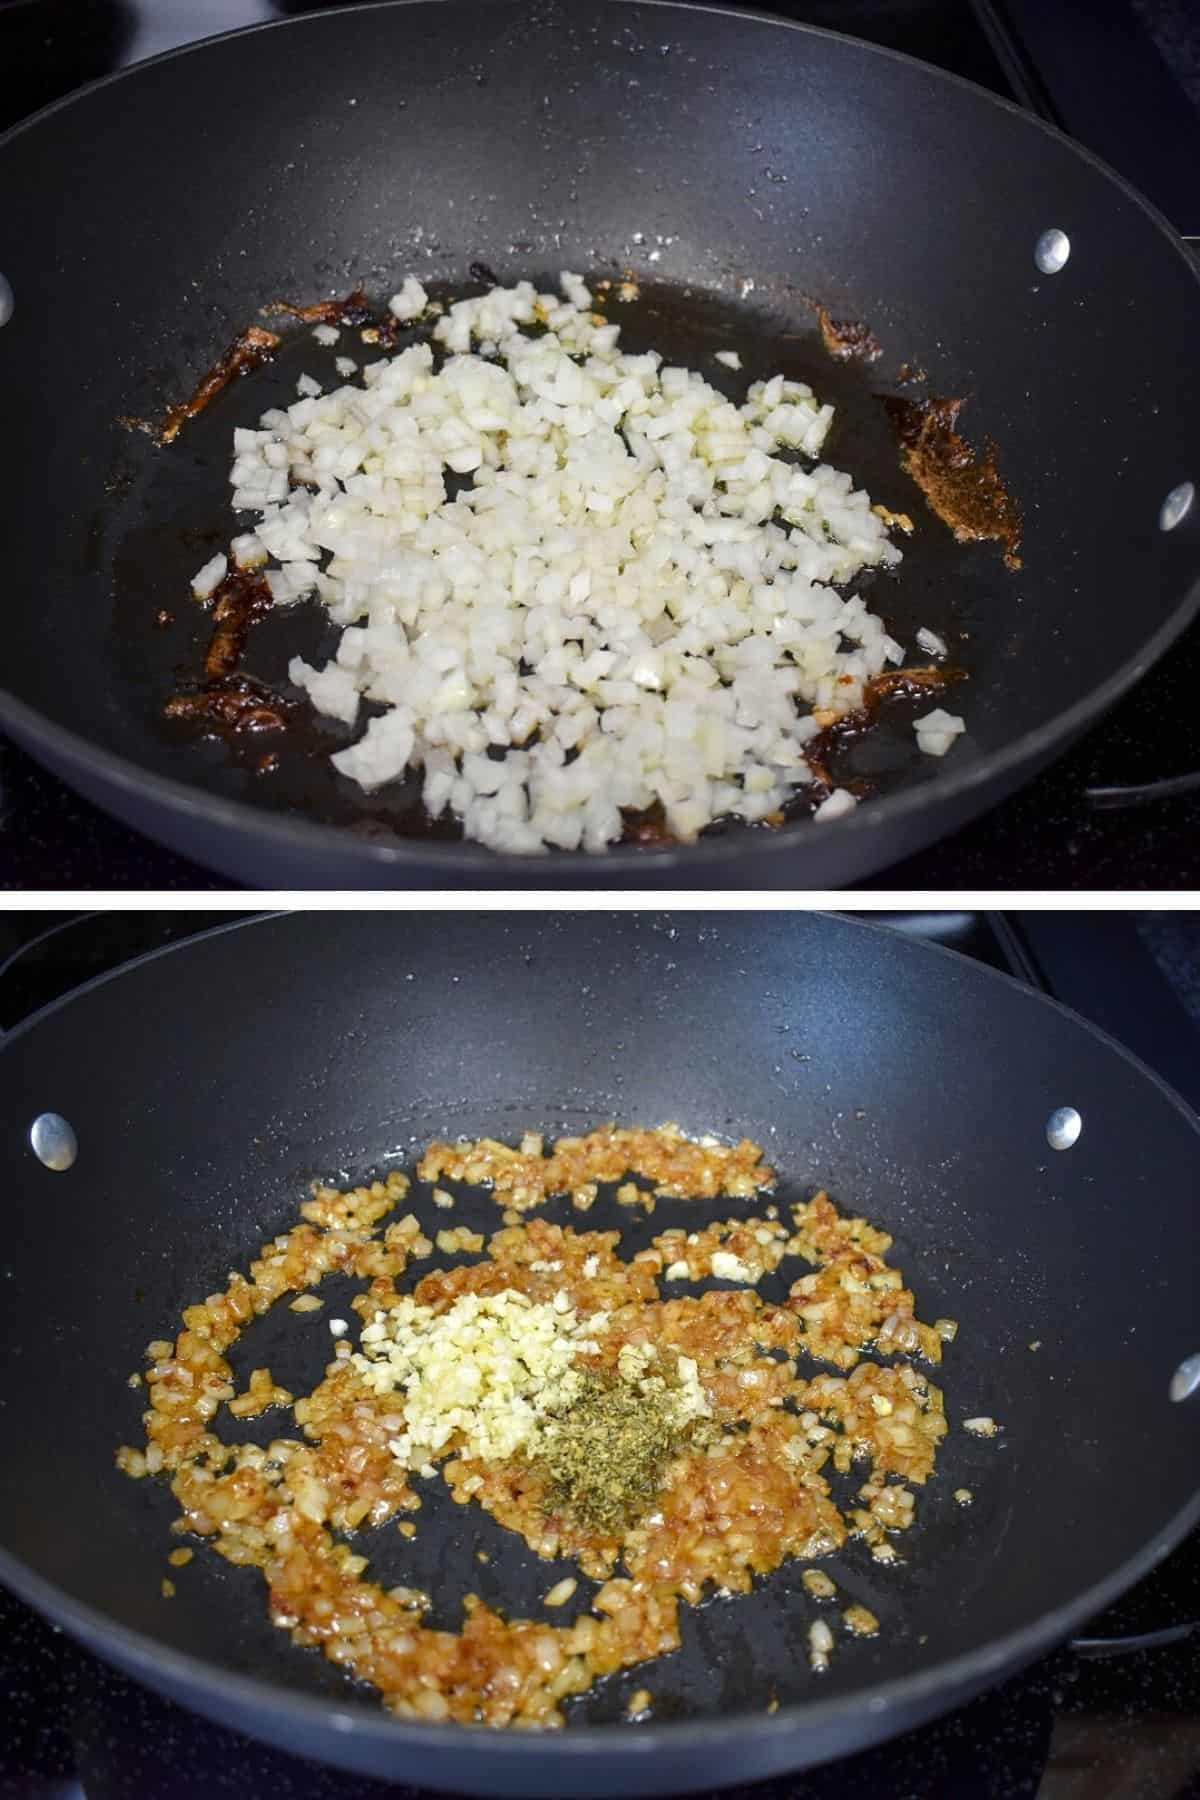 Two images, the top one is onions cooking in a large, black skillet. The bottom one is the onions are golden and garlic and oregano added to the same skillet.